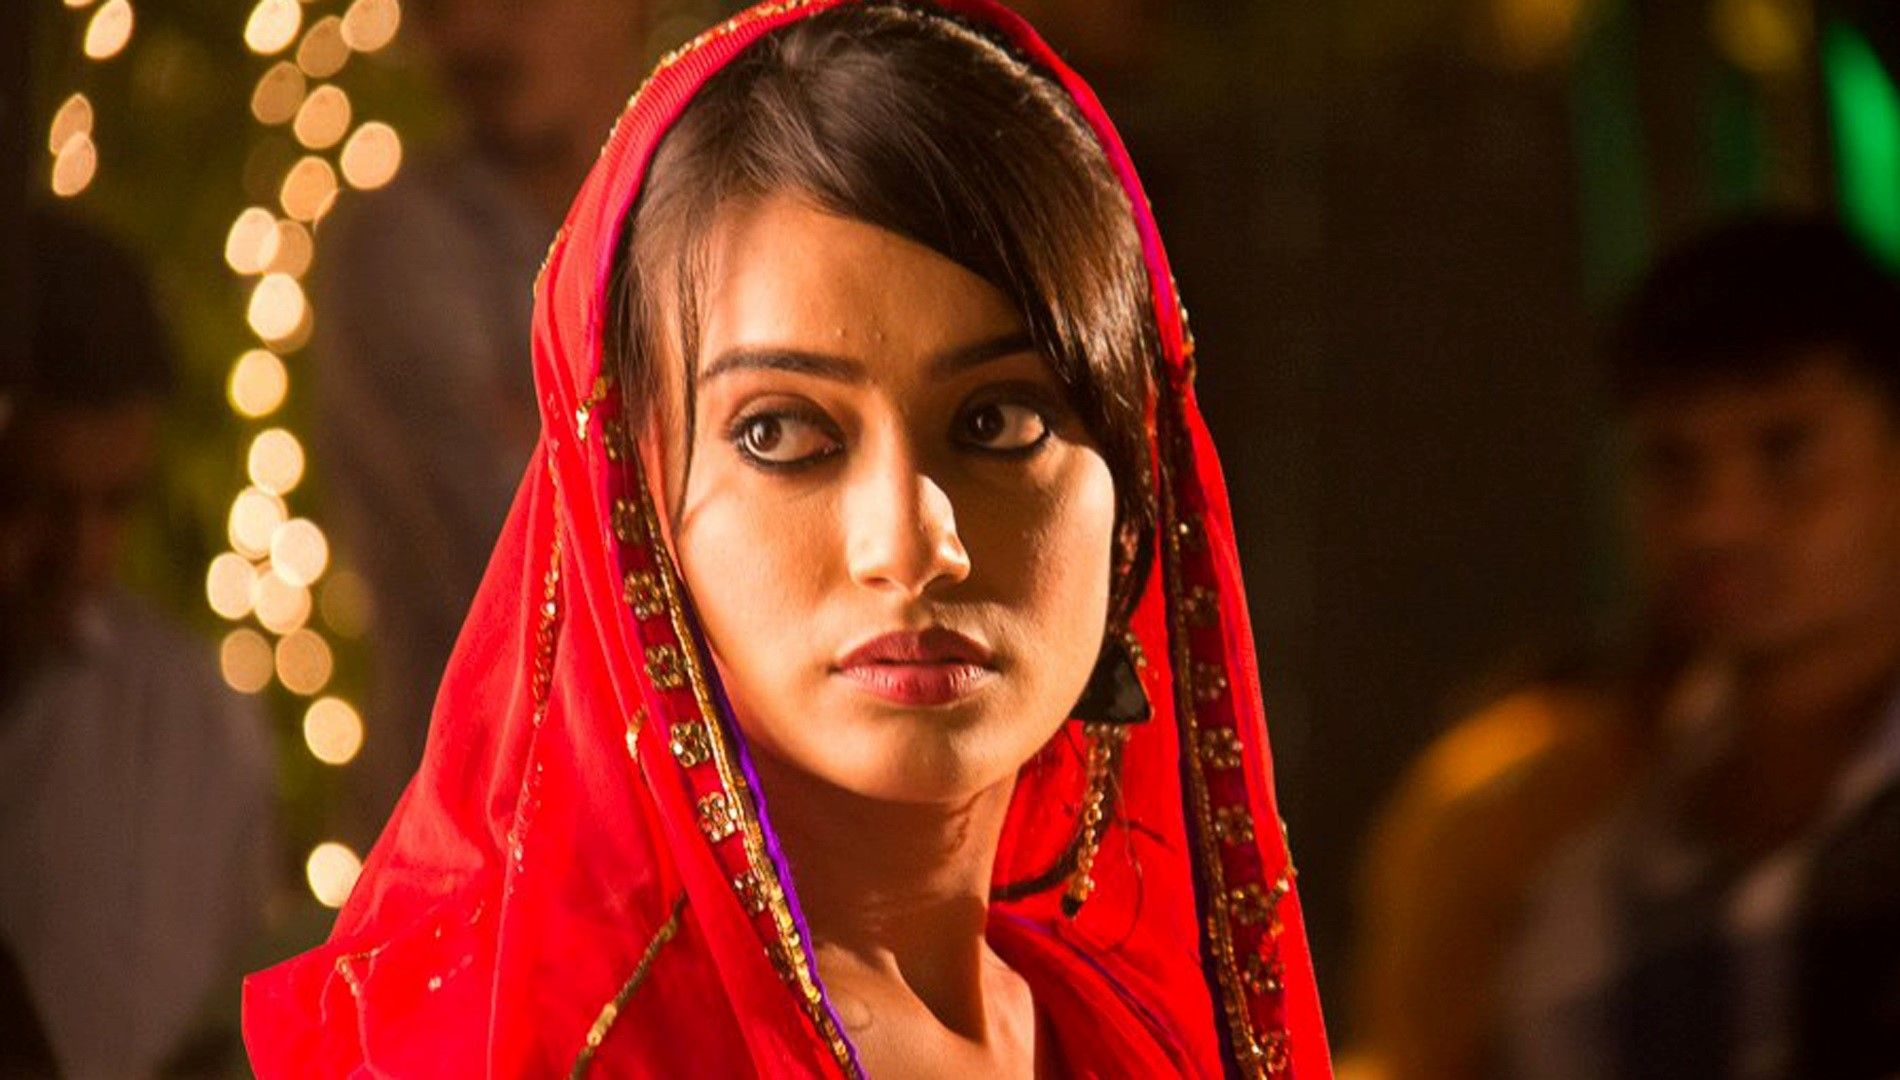 Hd wallpaper qubool hai - Qubool Hai Hd Wallpapers Images Pictures Photos Download